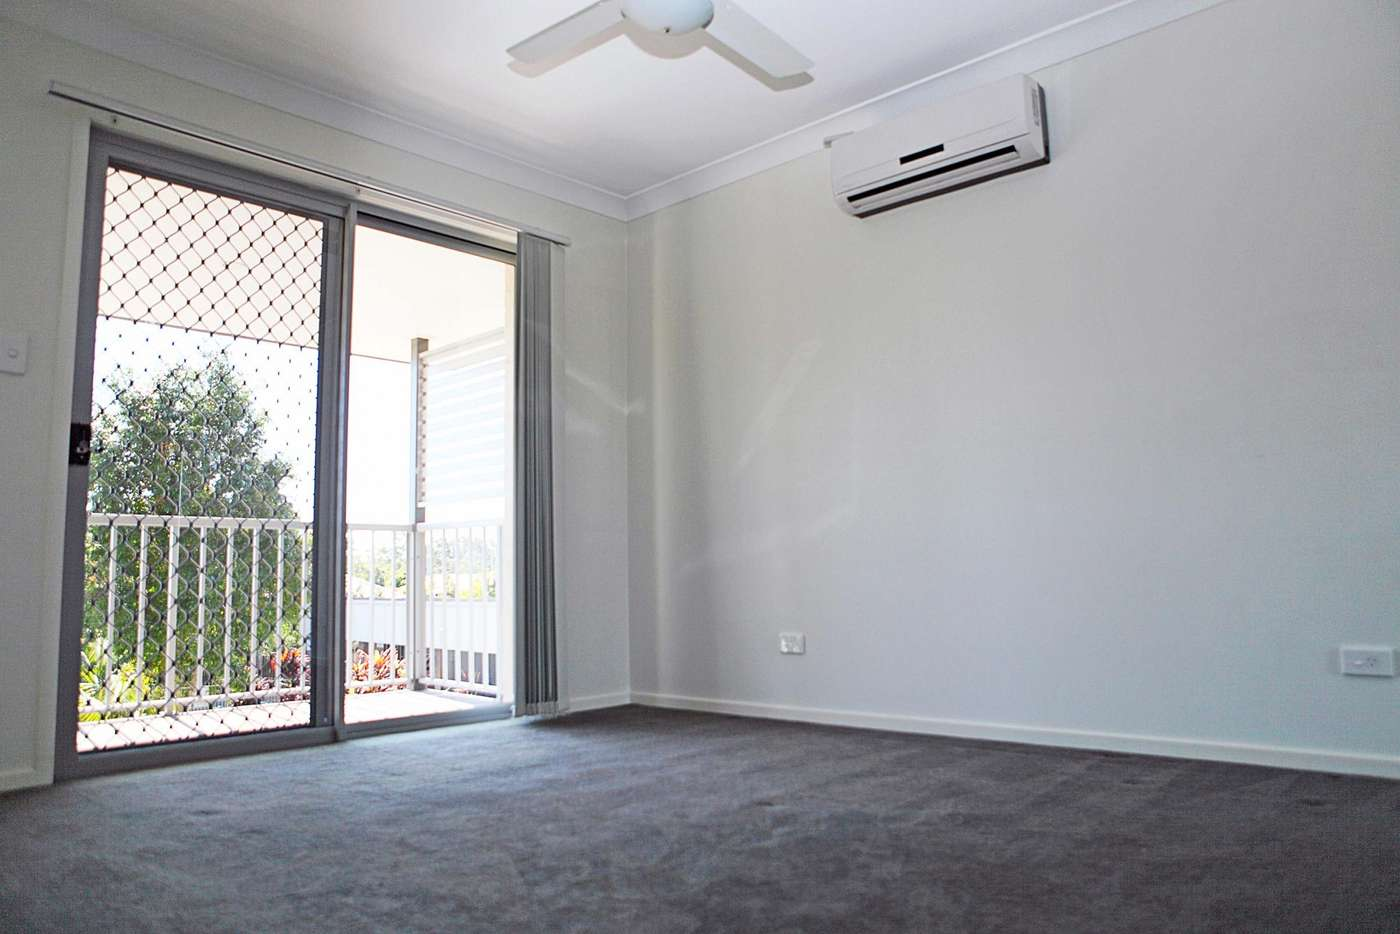 Sixth view of Homely townhouse listing, 68/68/2311 Logan road, Eight Mile Plains QLD 4113